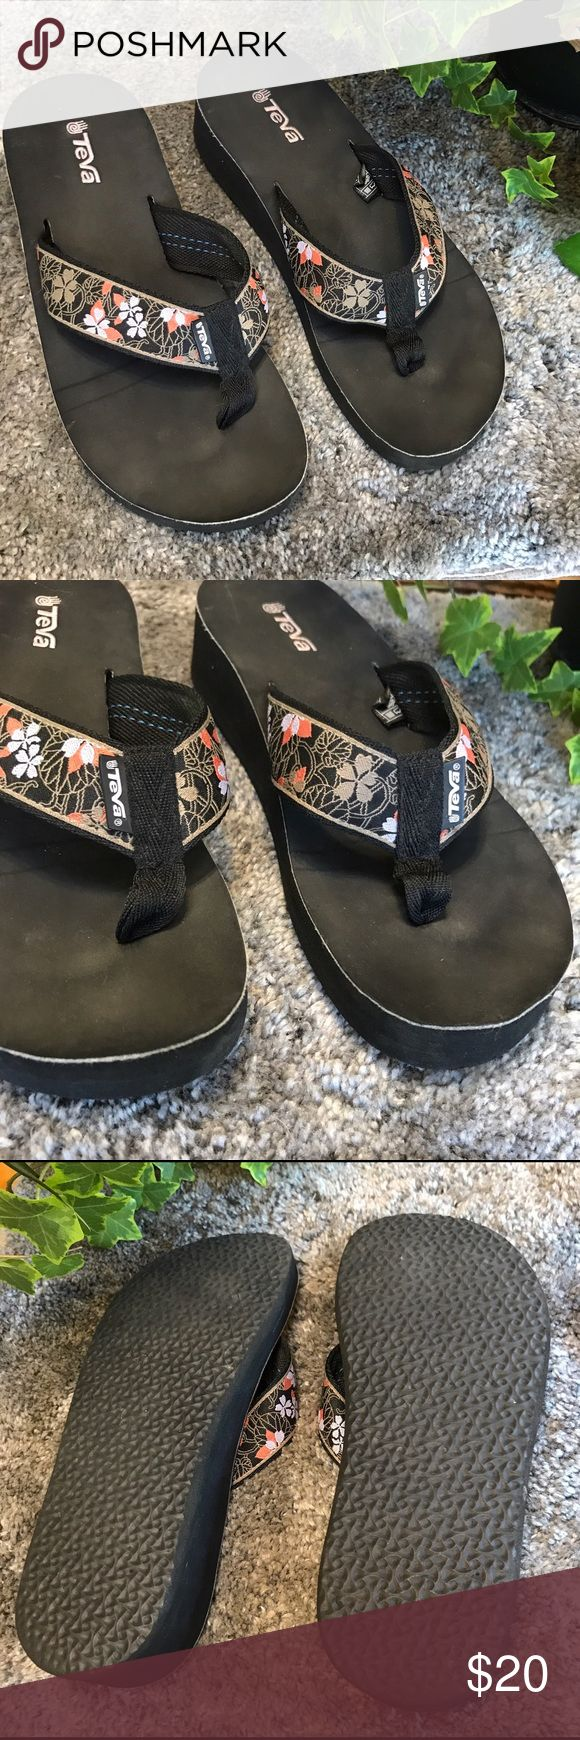 Teva Floral Strap Wedge Flip Flops Wedge Teva flip flops with floral detailed straps. In excellent used conditions with minimal signs of wear- see photos. Super cute and perfect for summer with tons of life left! Please feel free to ask questions! Teva Shoes